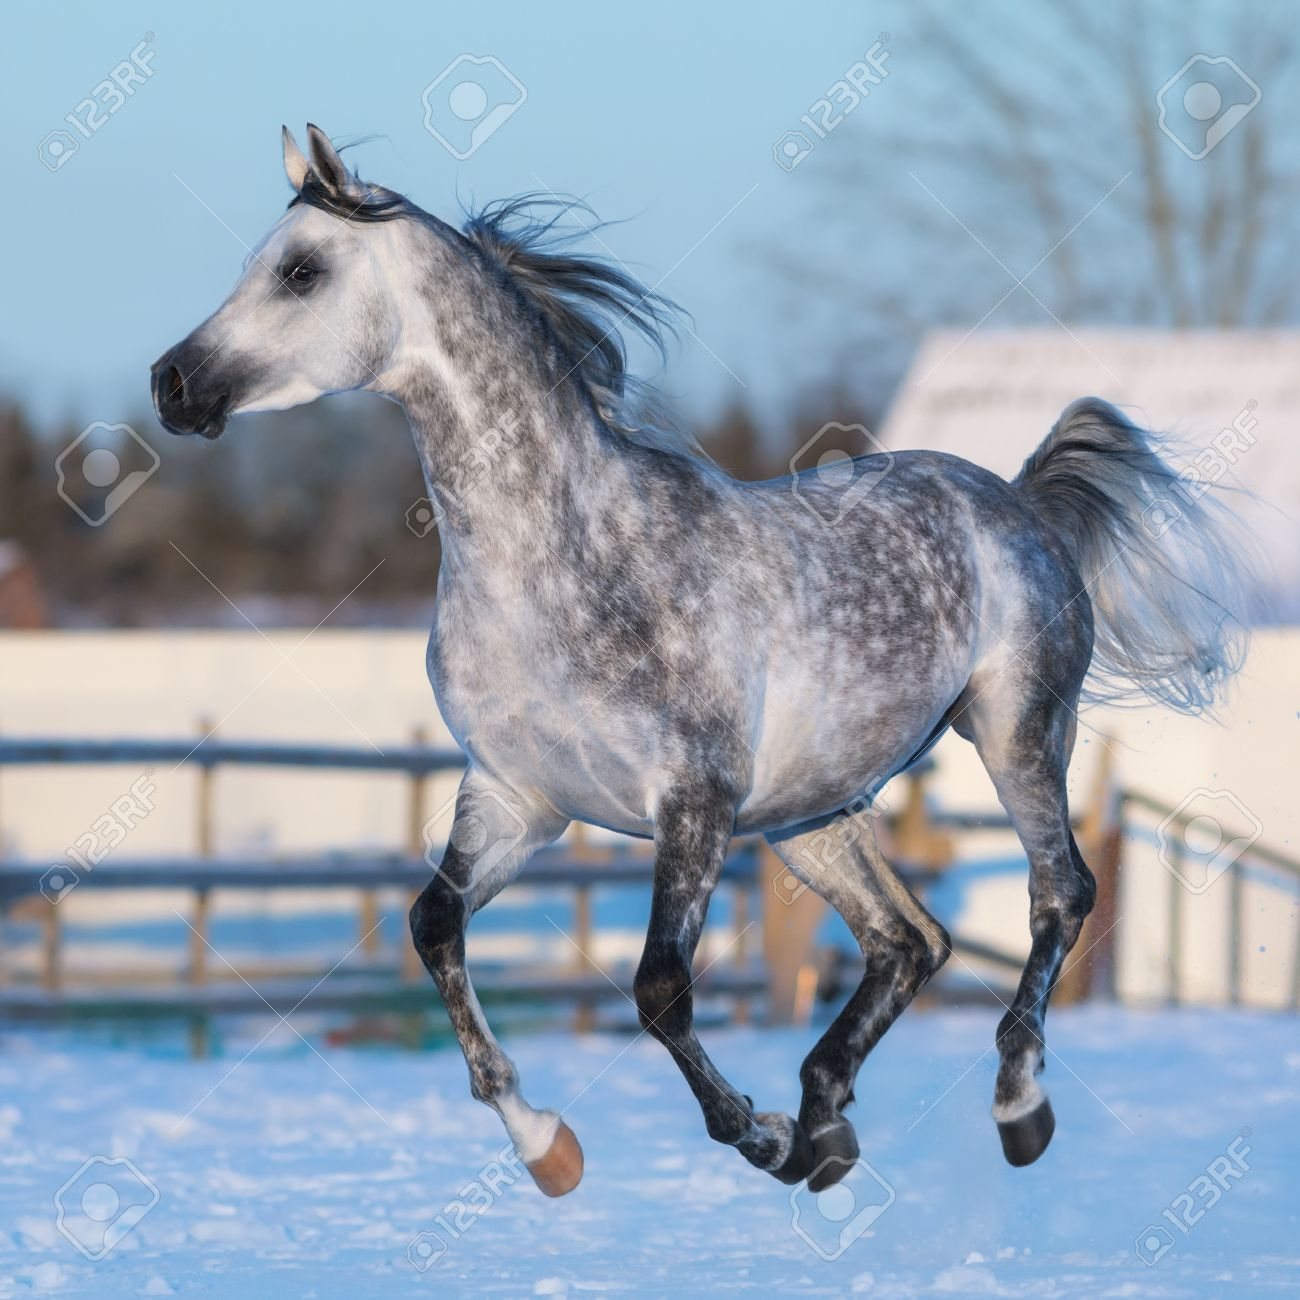 Dapple Grey Stallion Of Arabian Breed Galloping On Snow Meadow Stock Photo Picture And Royalty Free Image Image 52443986